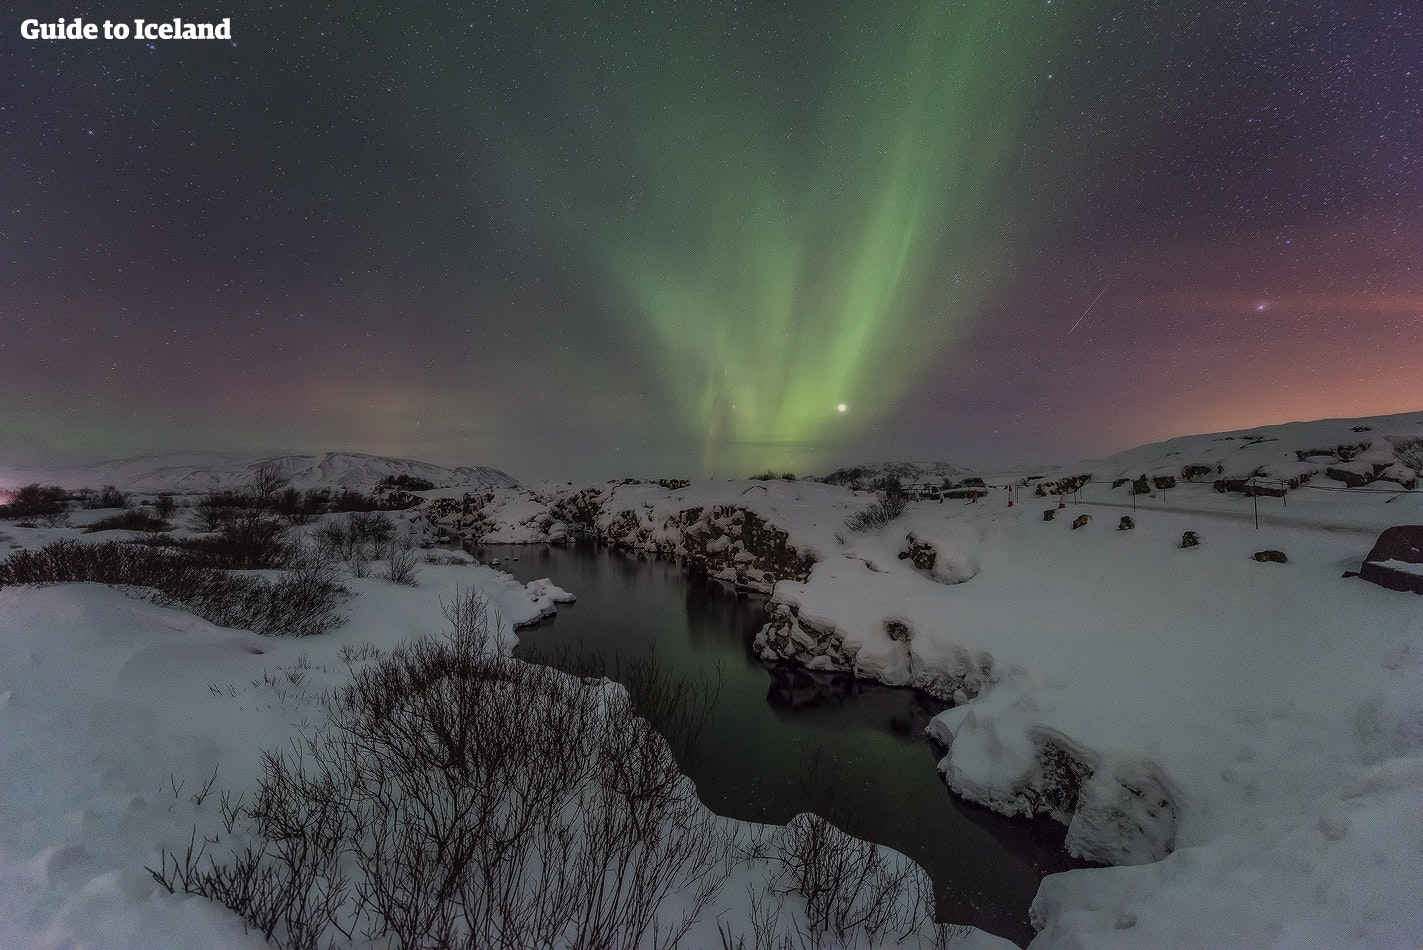 Northern Lights over Þingvellir National Park in Iceland